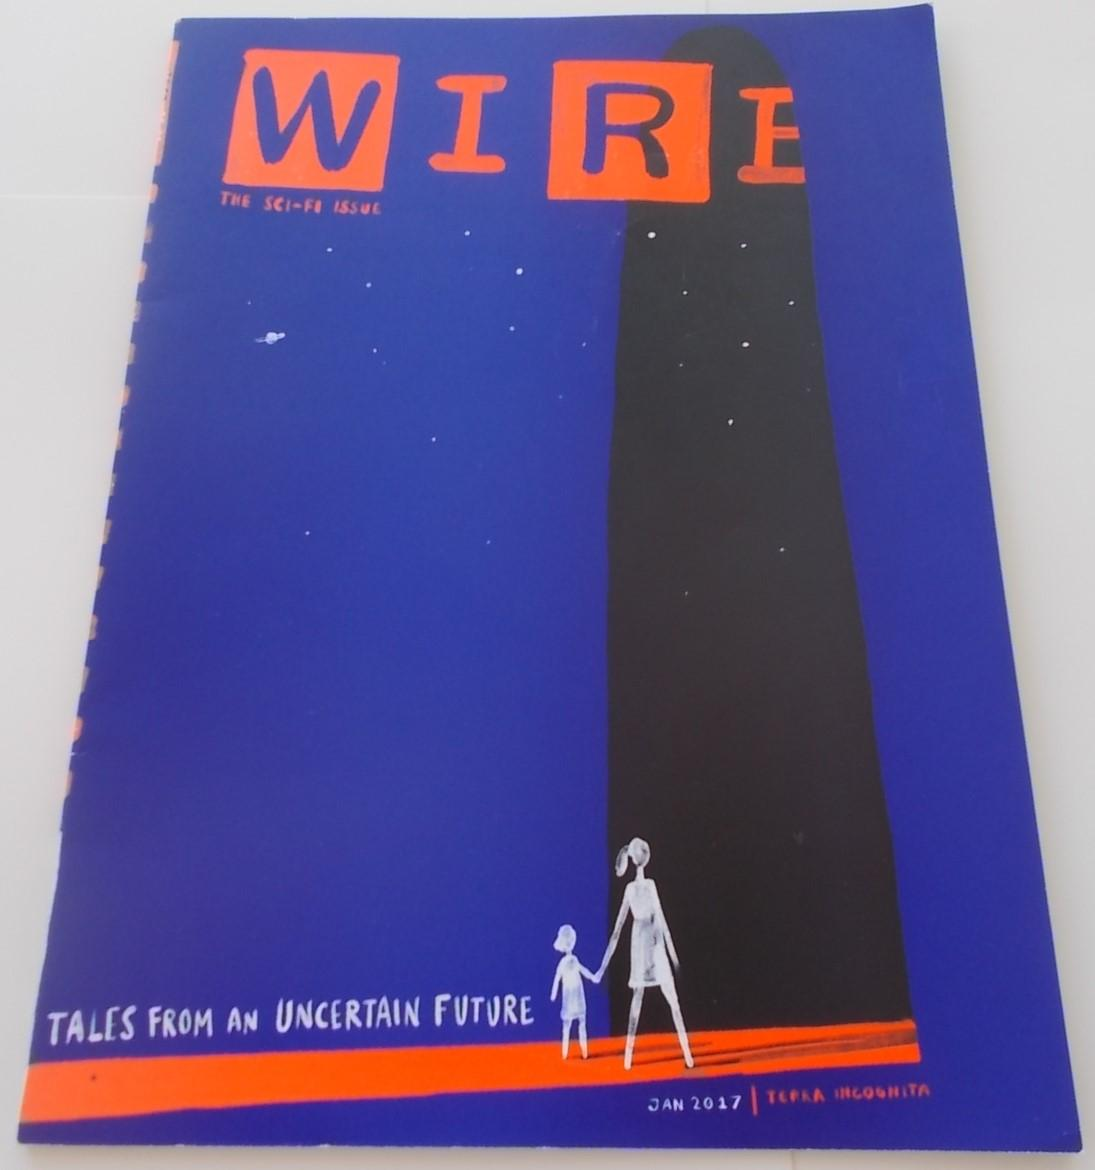 Wired (January 2017) (Magazine) The Sci-Fi Fiction Issue: Tales From ...